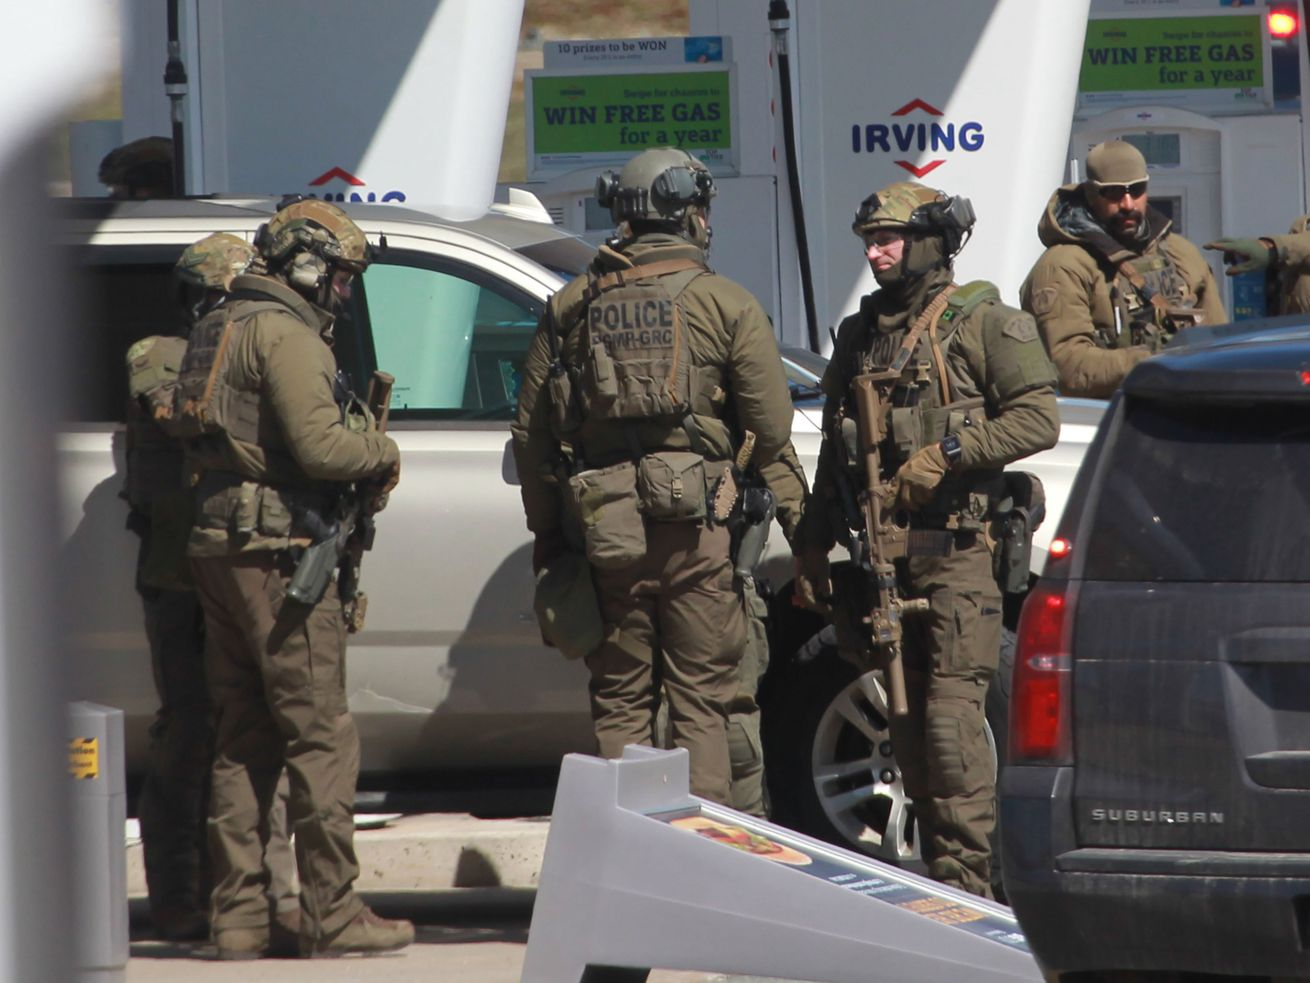 Four officers, in olive fatigues, body armor, and helmets, stand with their hands on their rifles.